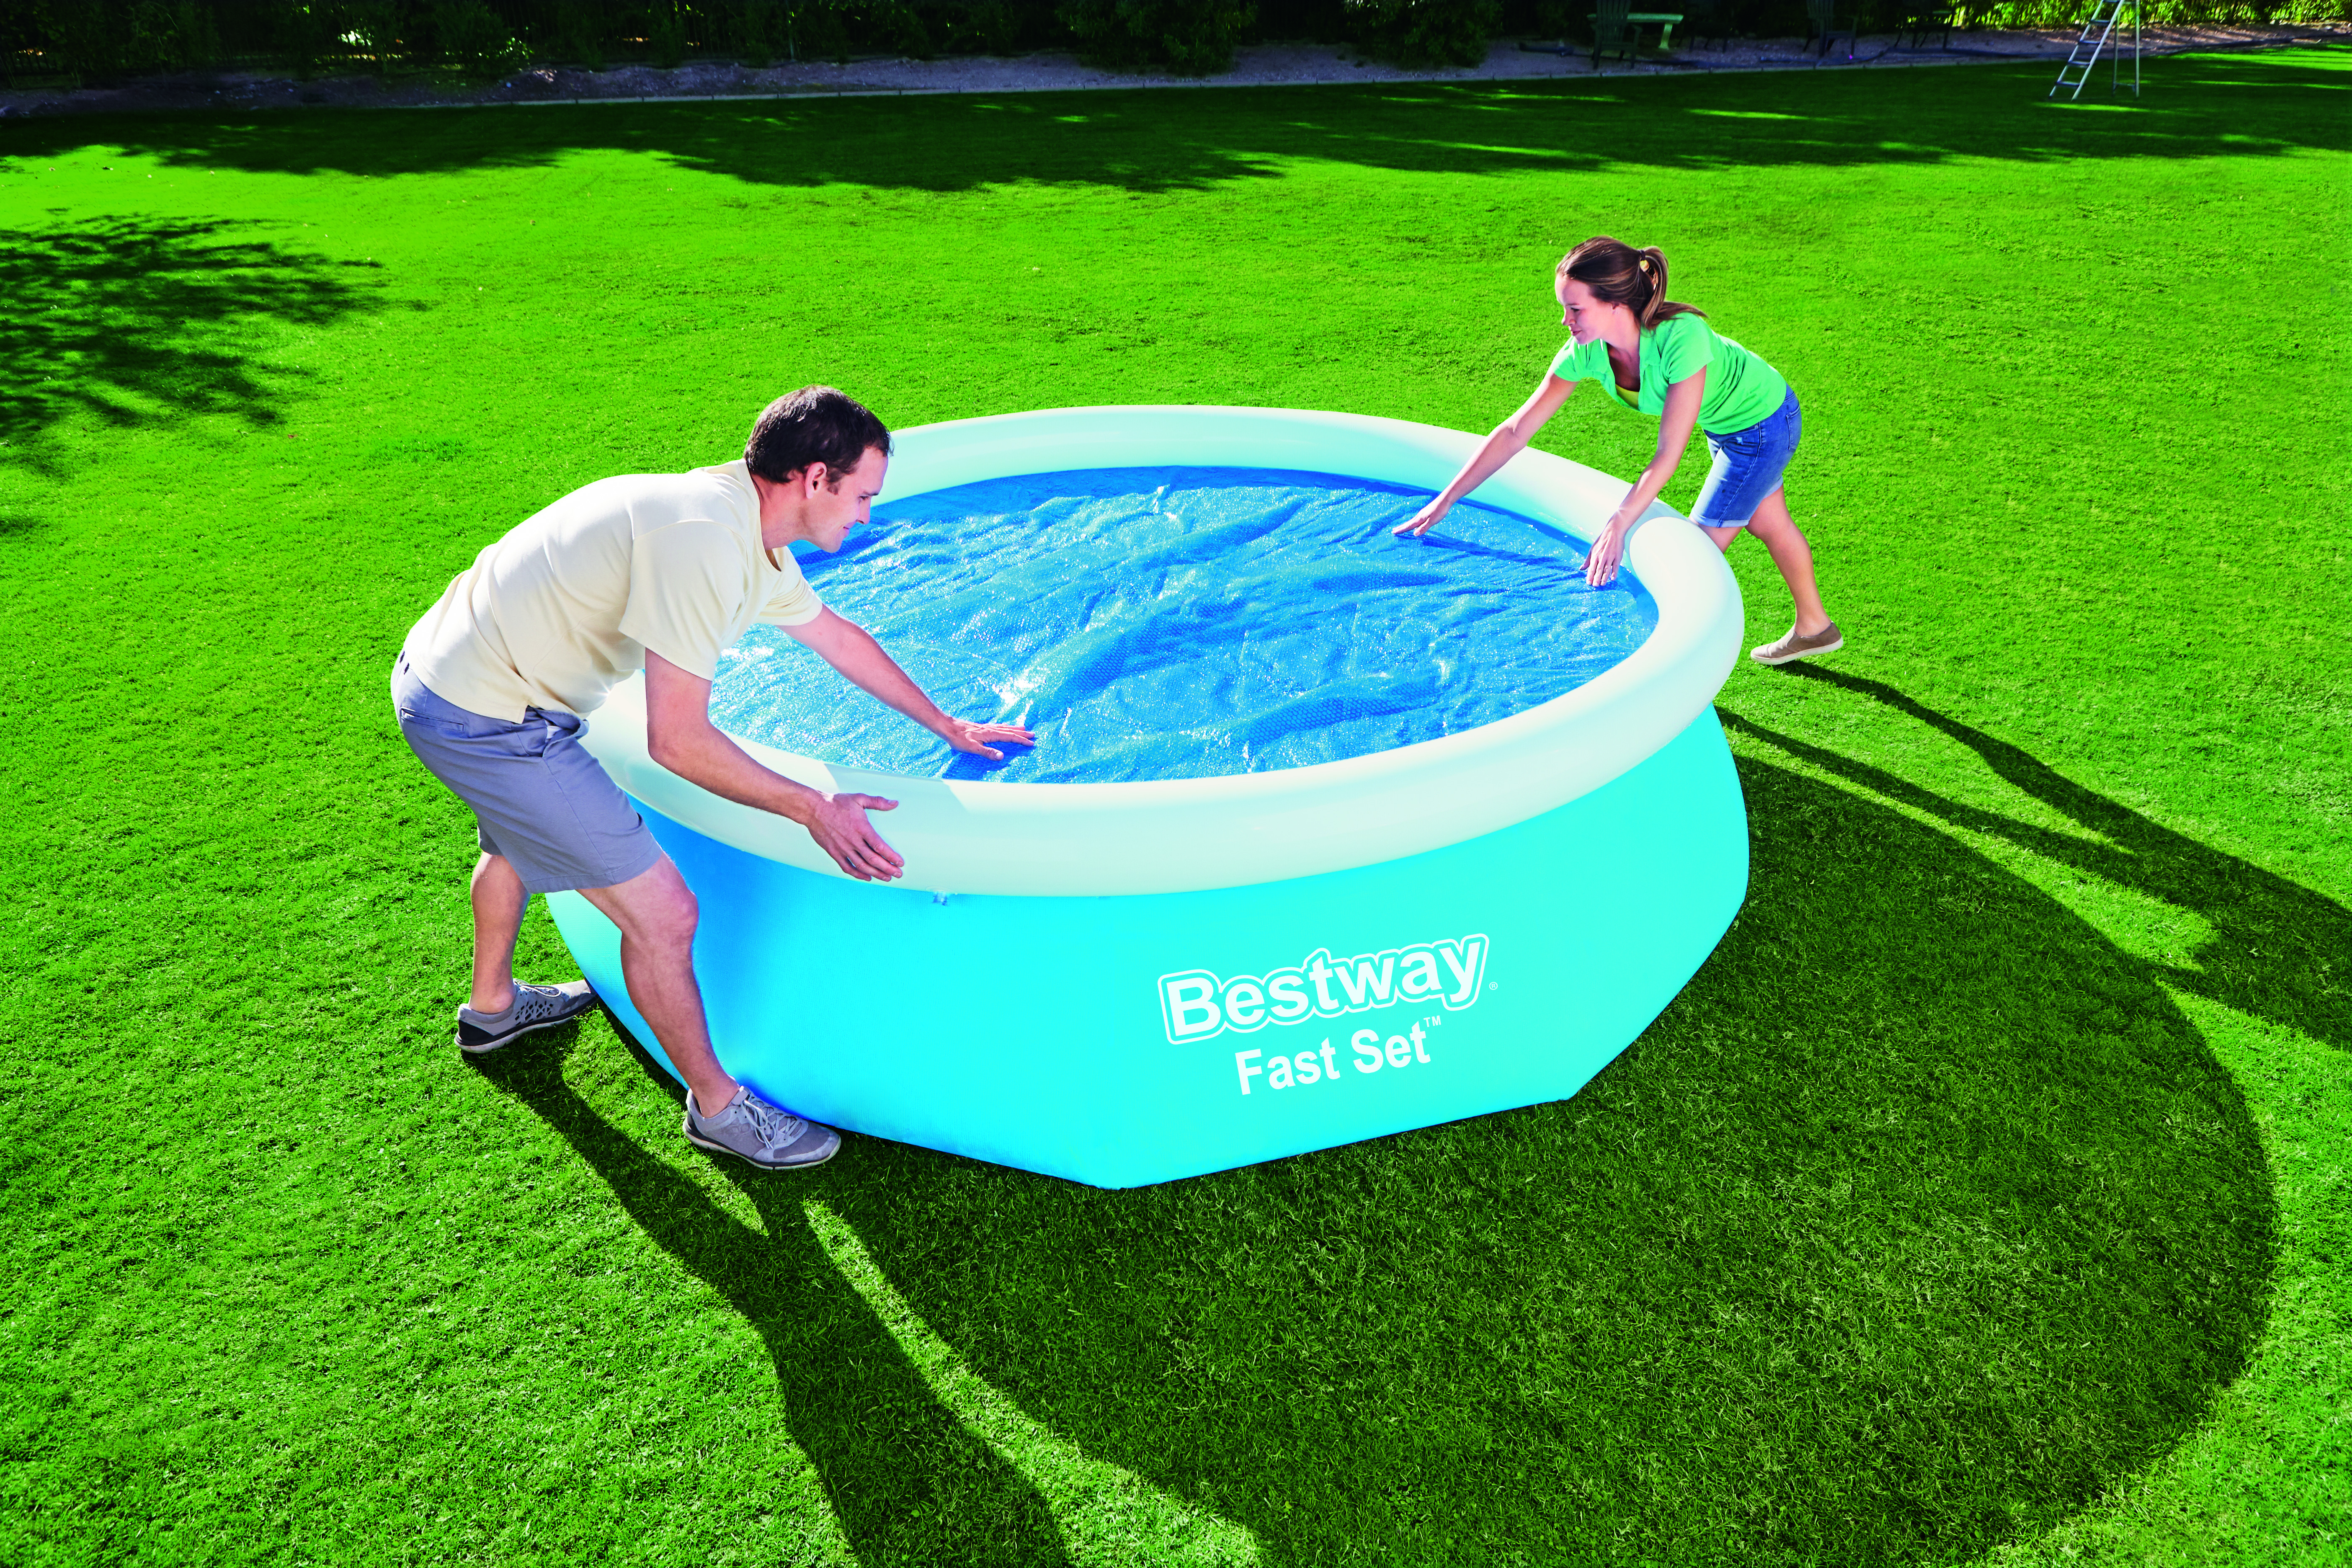 Specs Bestway Solar Pool Cover 3 05m Pool Parts & Accessories (58241)